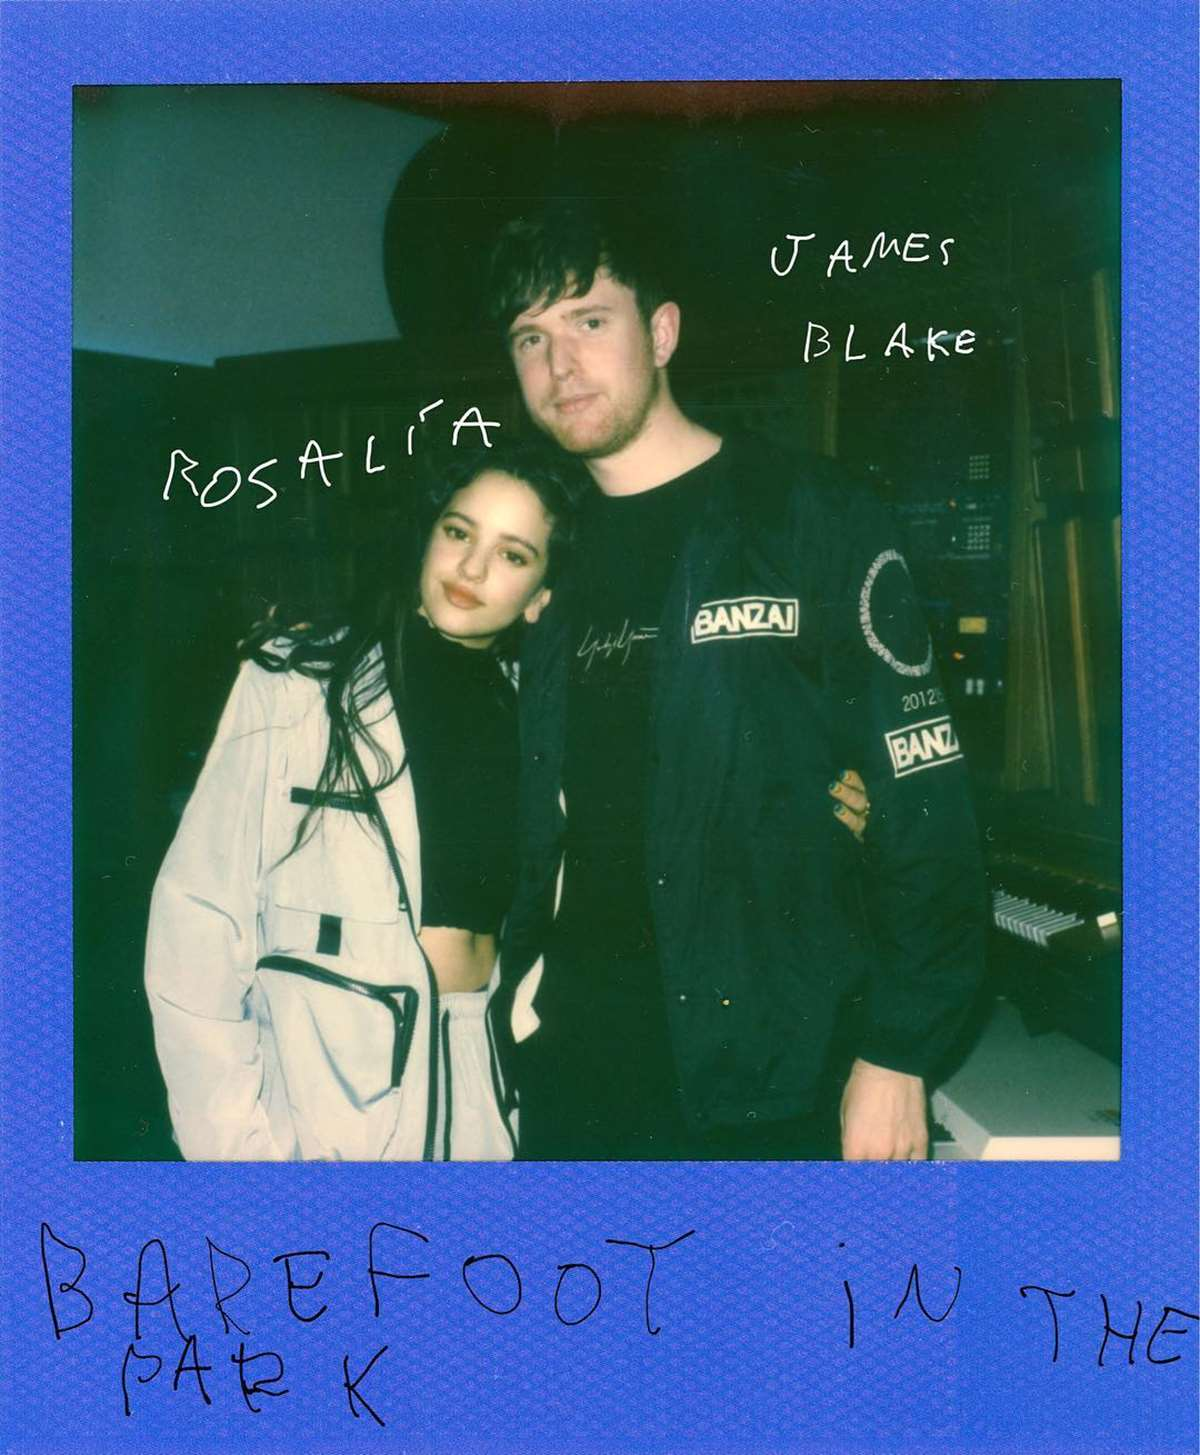 Barefoot in the Park, la exquisita unión entre James Blake y Rosalía